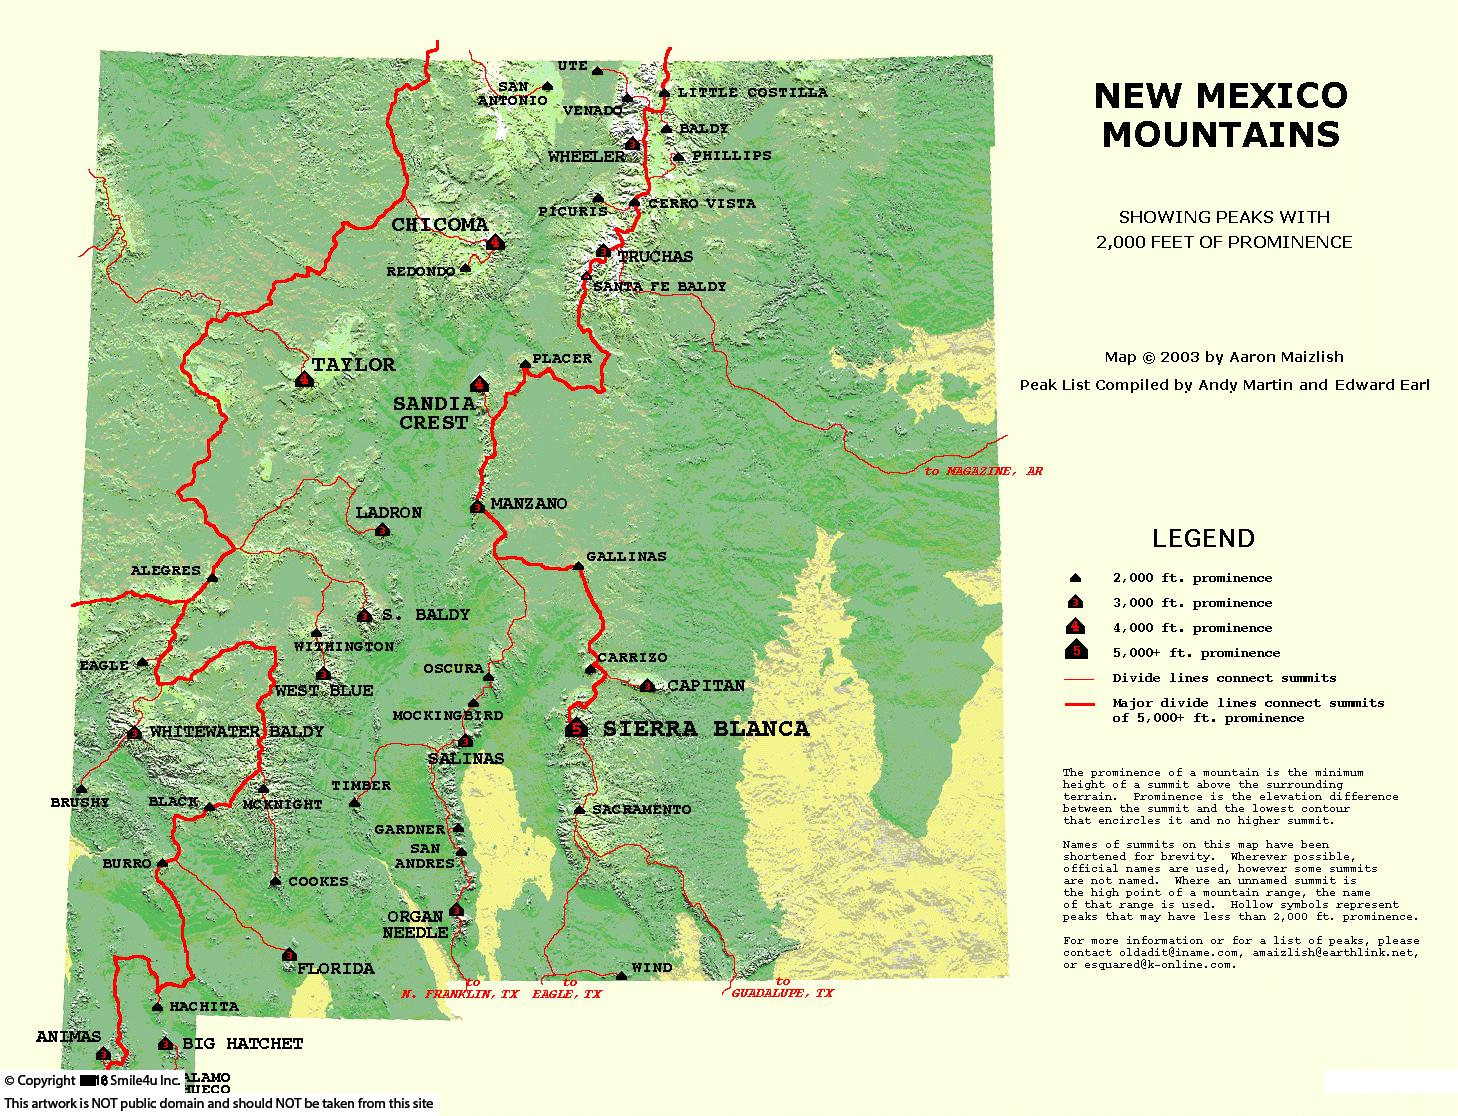 152244_watermarked_newmexicosummits.png